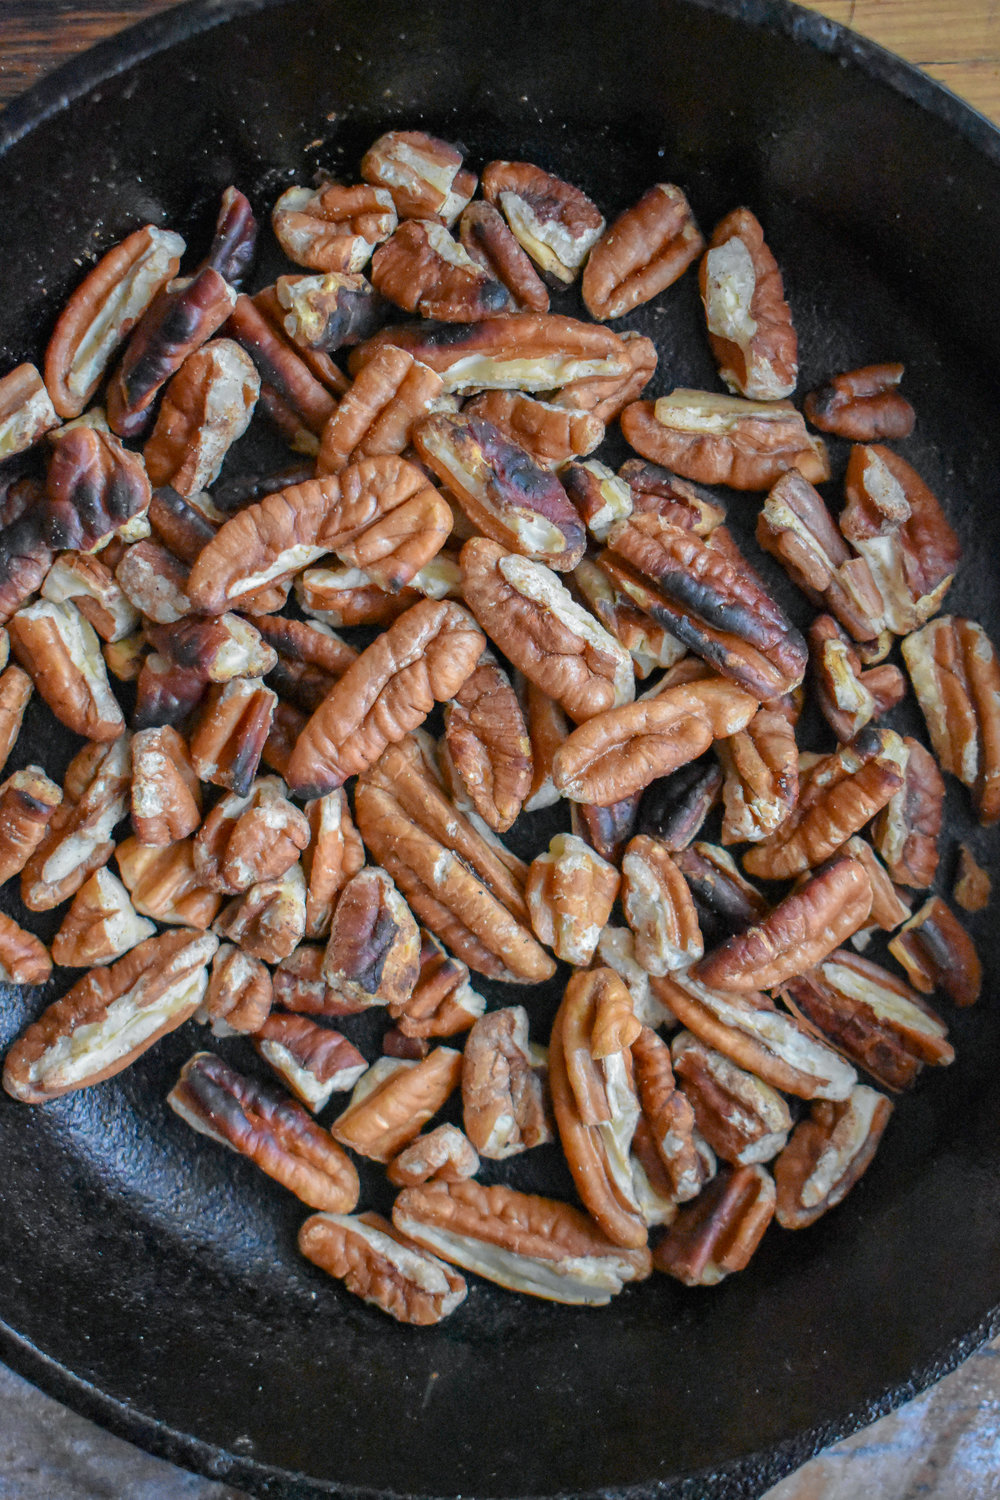 7. While the onion jam cooks, add pecans to a dry castiron pan and dry cook for 5-6 minutes stirring once or twice until the pecans start to brown and become fragrant. Take off heat once browned and set aside.